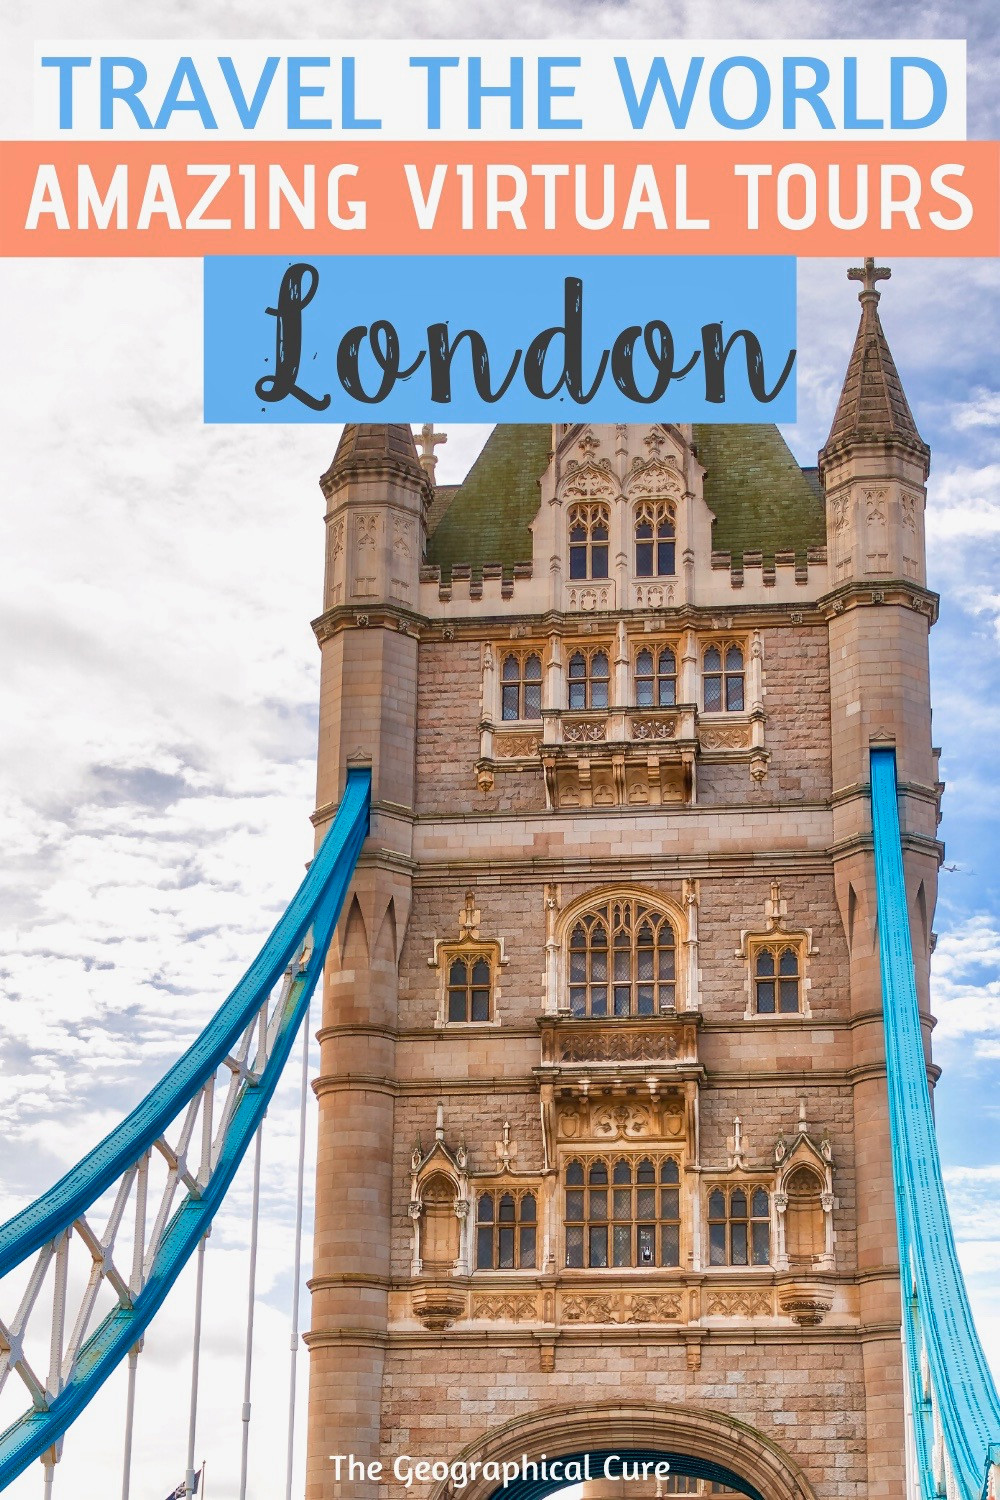 travel the world from home -- amazing virtual tours of London